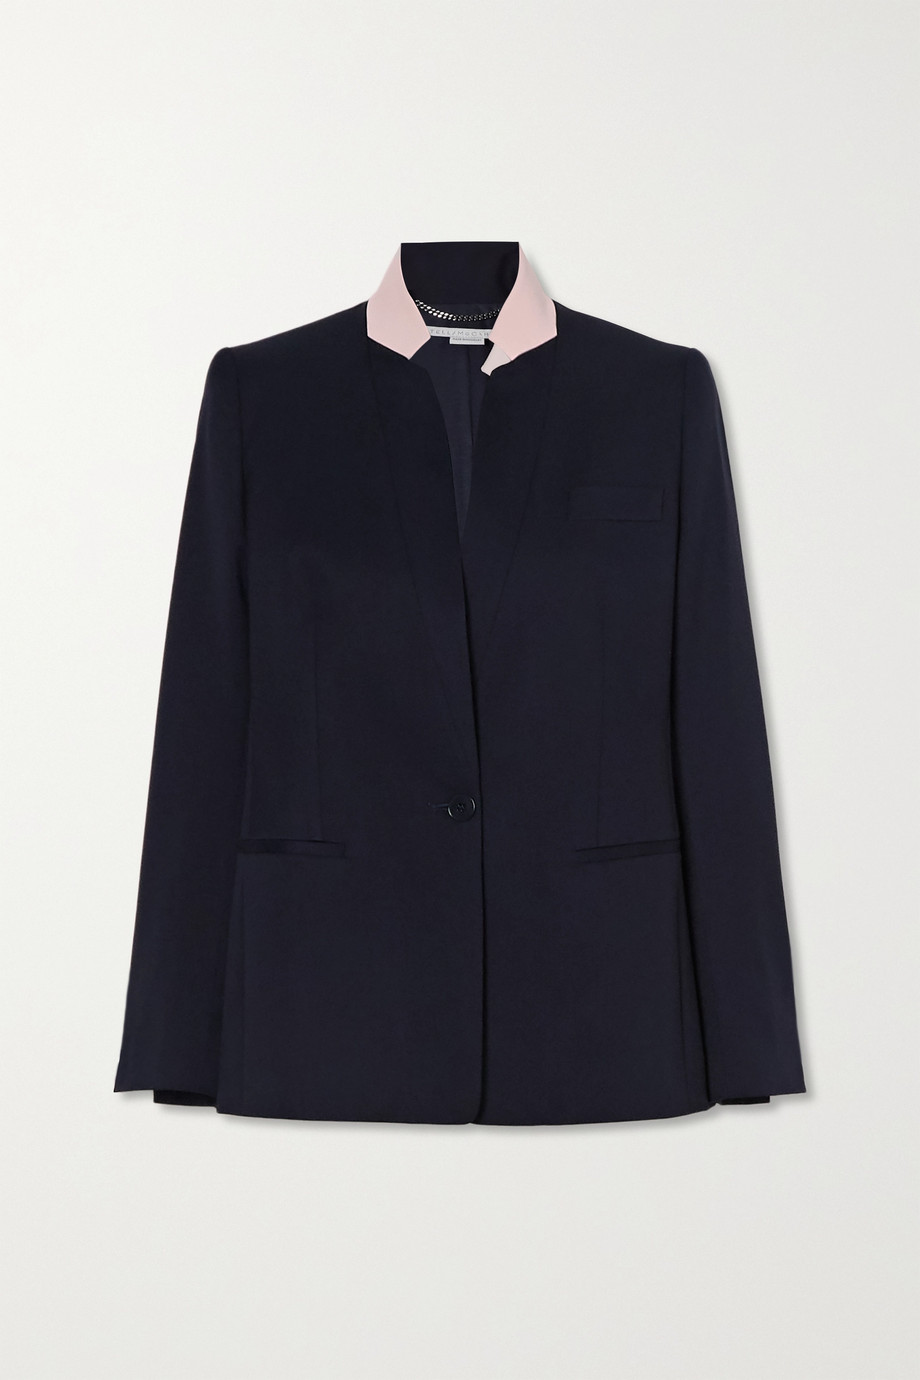 Stella McCartney Florence two-tone wool blazer